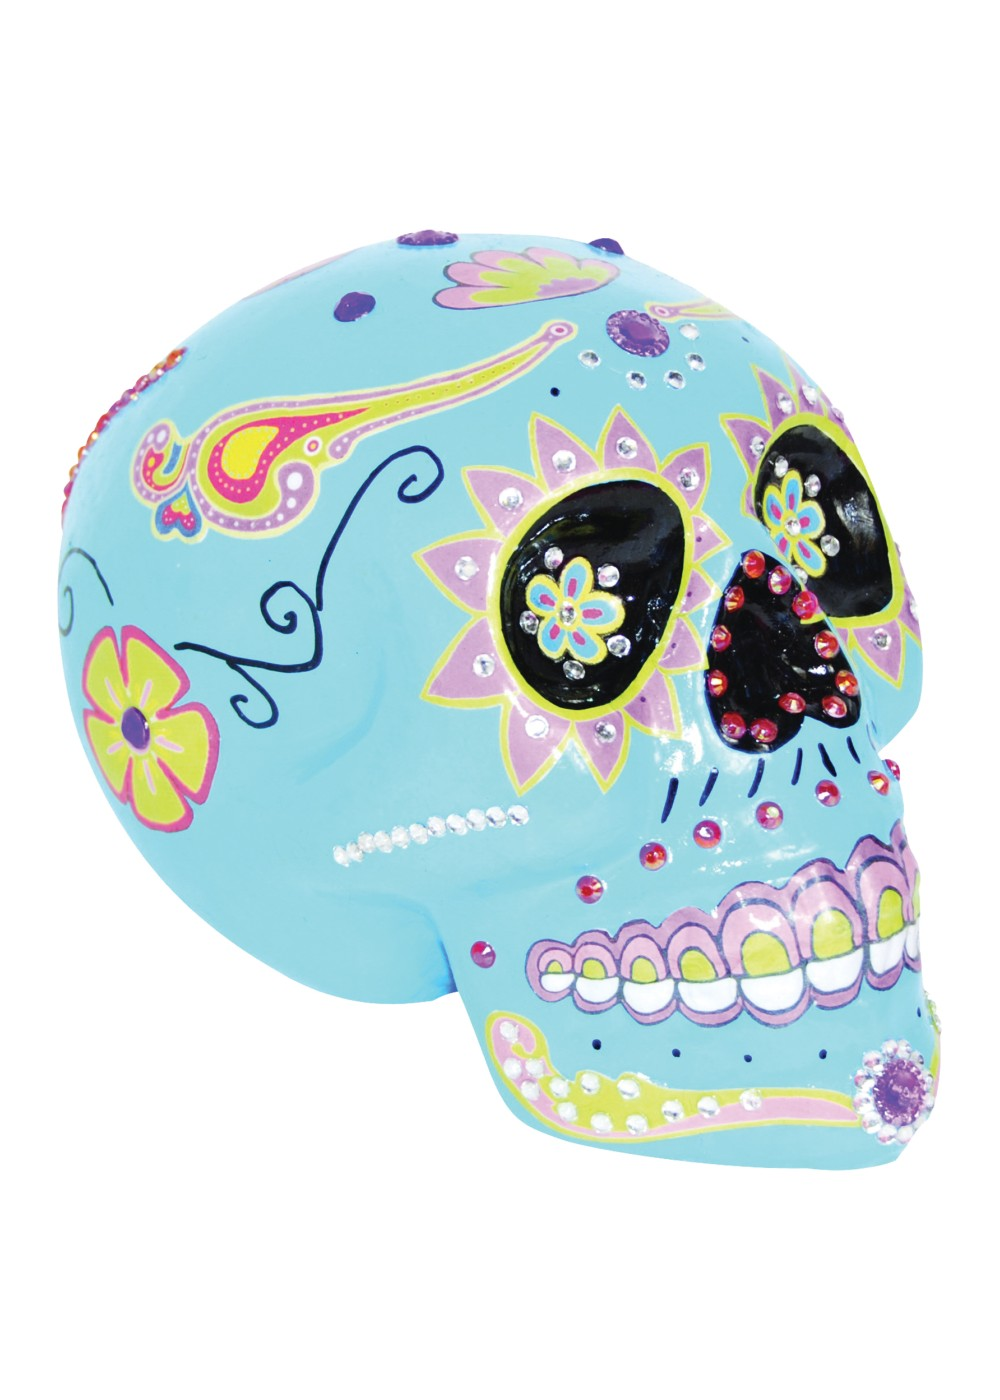 Day Of The Dead Sugar Skull Decoration Decorations Home Decorators Catalog Best Ideas of Home Decor and Design [homedecoratorscatalog.us]